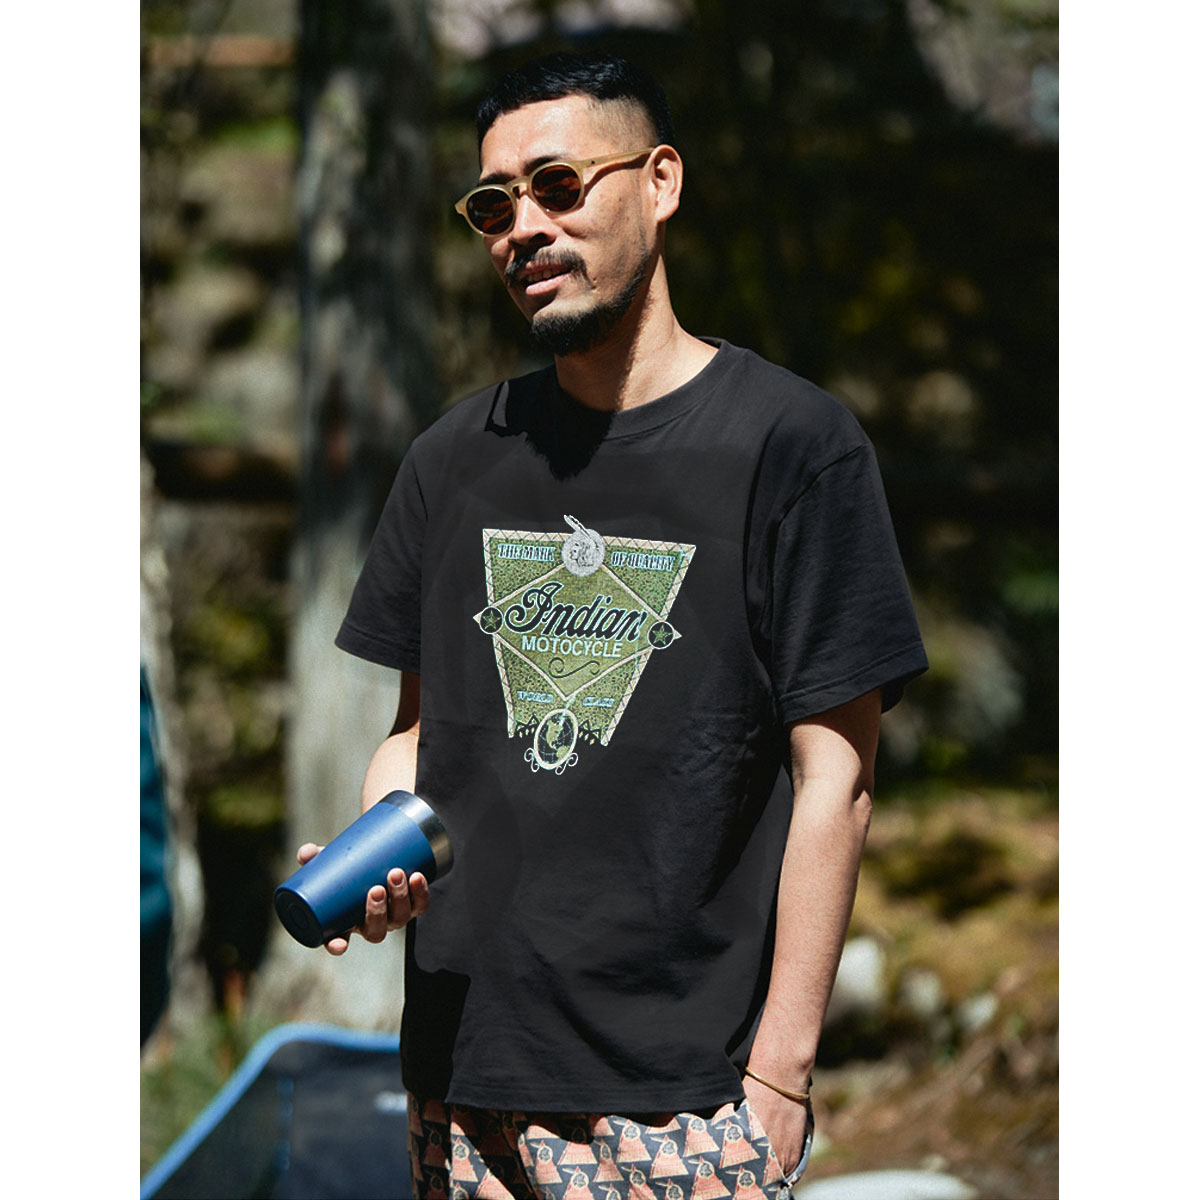 Indian インディアン The Indian is Back Tee WORLD CLASS